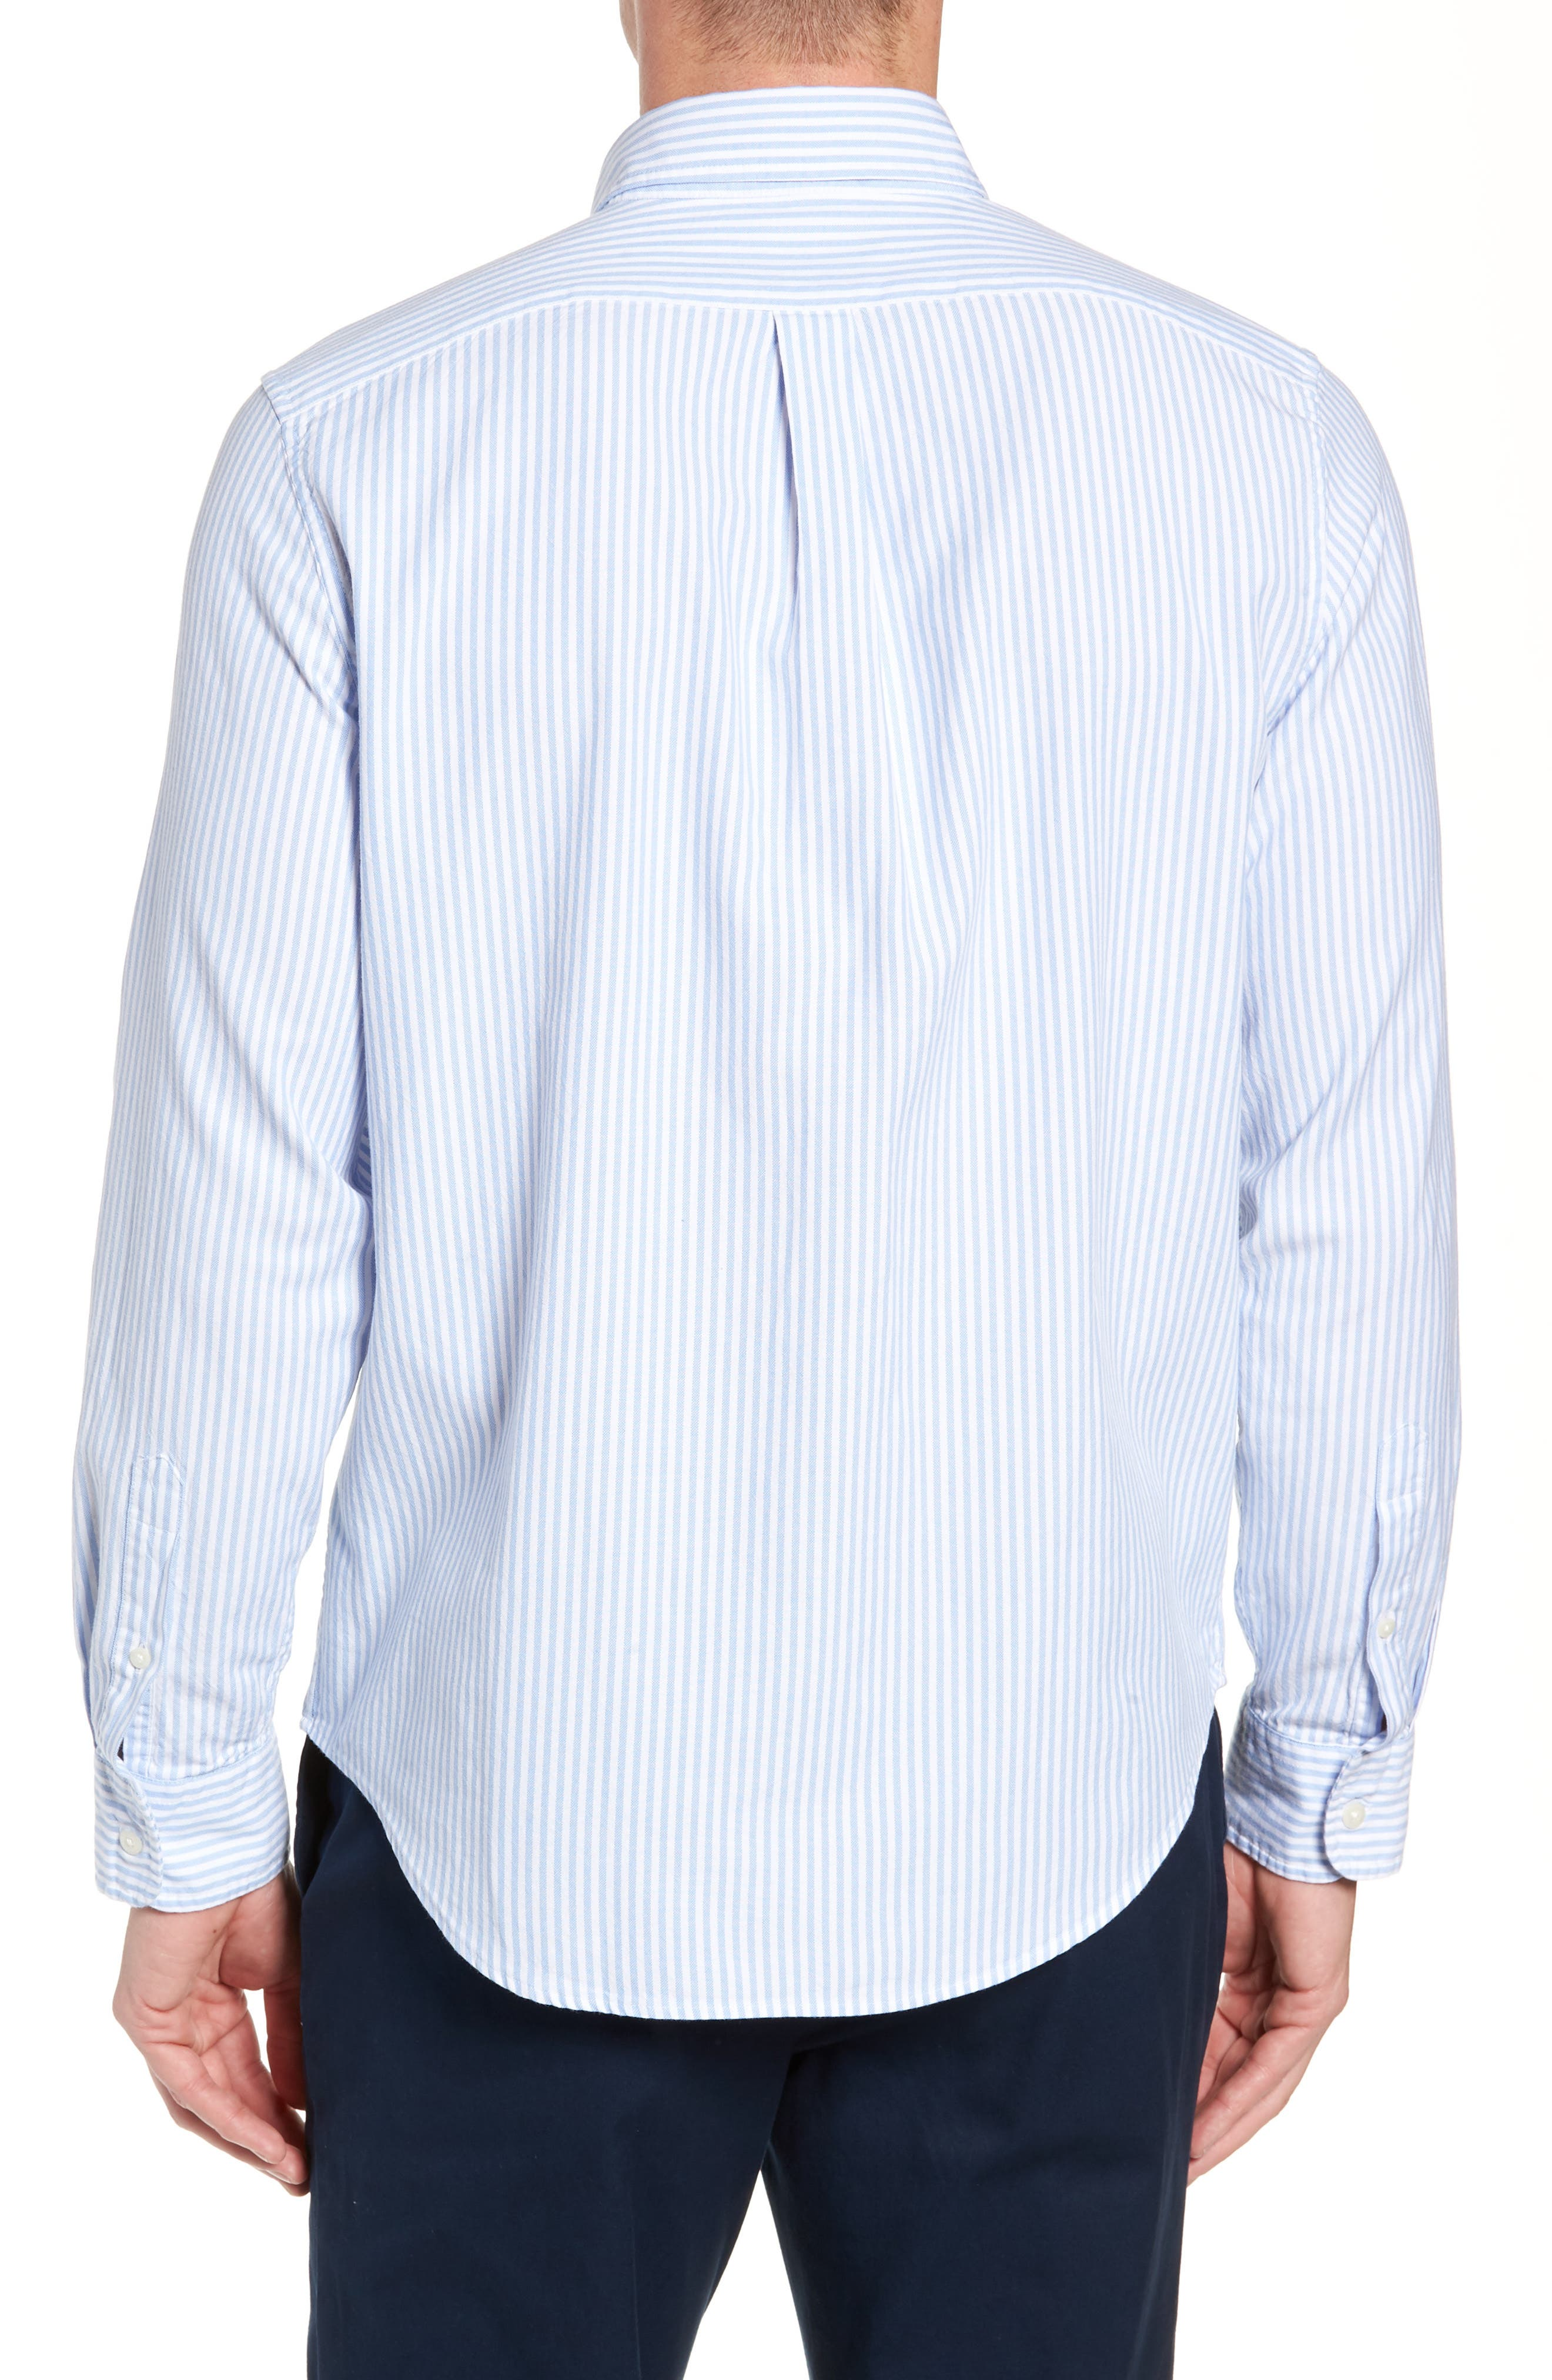 Tiloo Cay Slim Stretch Tucker Sport Shirt,                             Alternate thumbnail 3, color,                             484